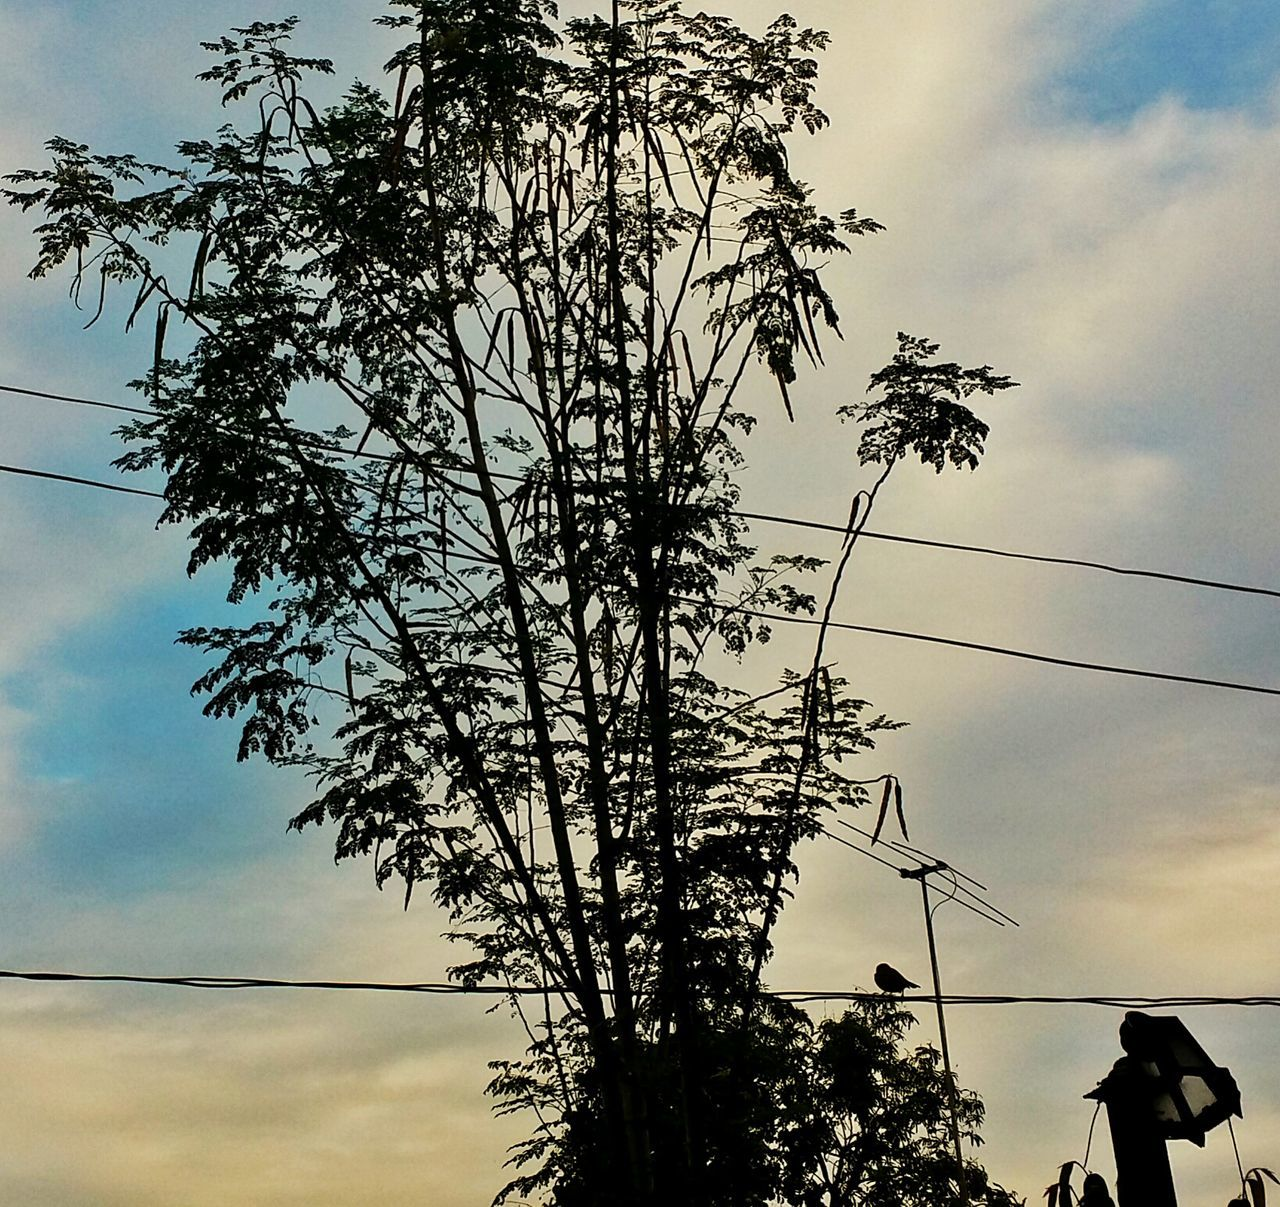 tree, sky, cloud - sky, low angle view, silhouette, growth, cable, nature, outdoors, beauty in nature, real people, scenics, day, men, telephone line, one person, people